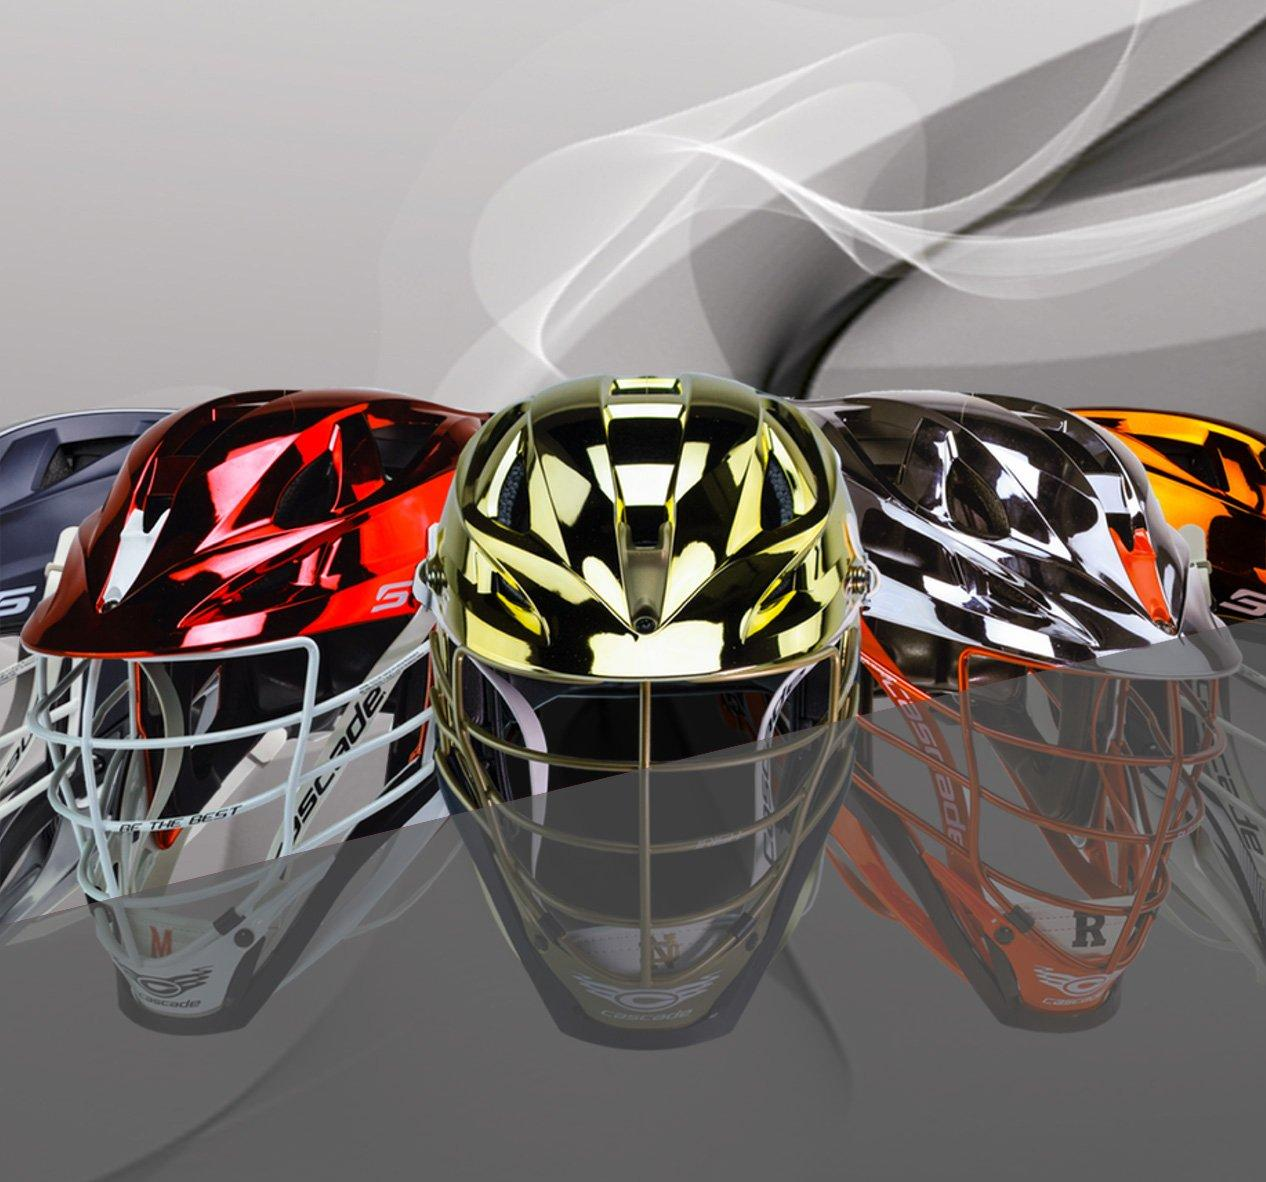 Lacrosse Helmets and Masks for Men, Women, and Youth Players